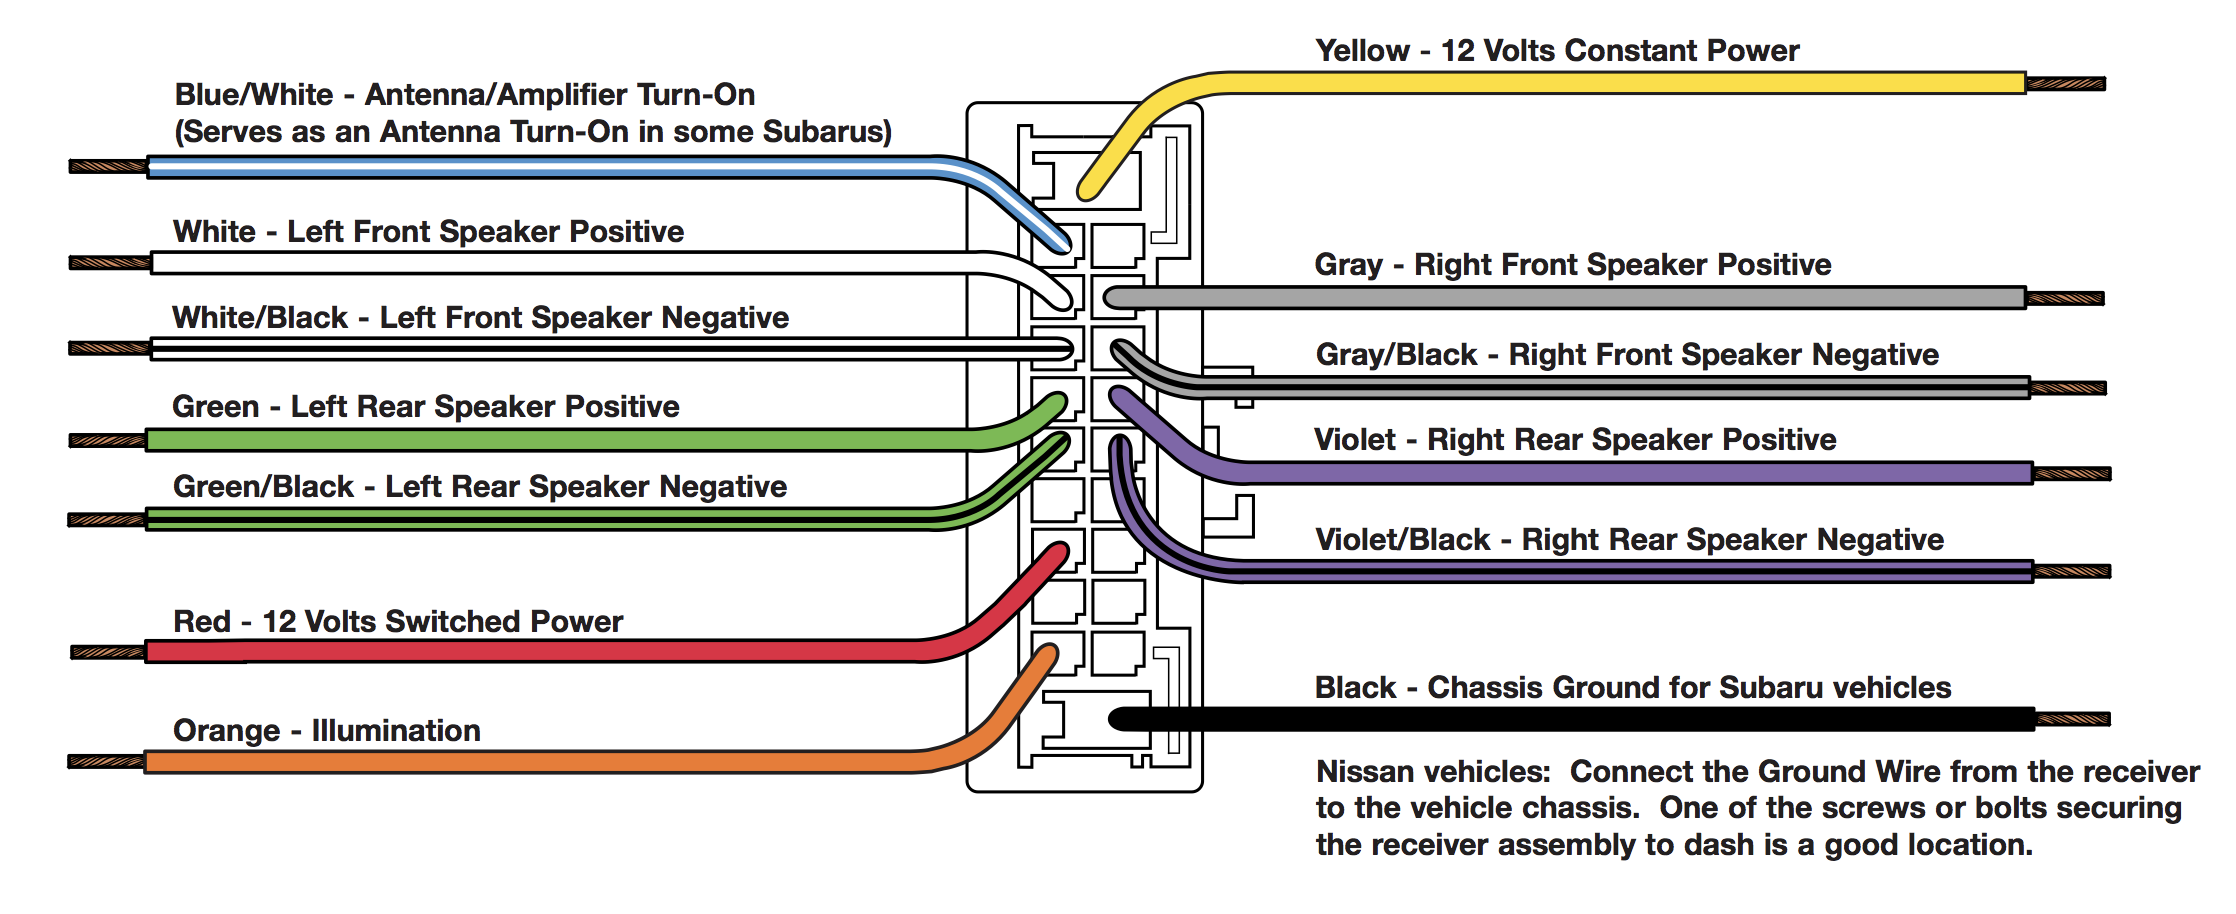 2013 Wrx Radio Wiring Diagram